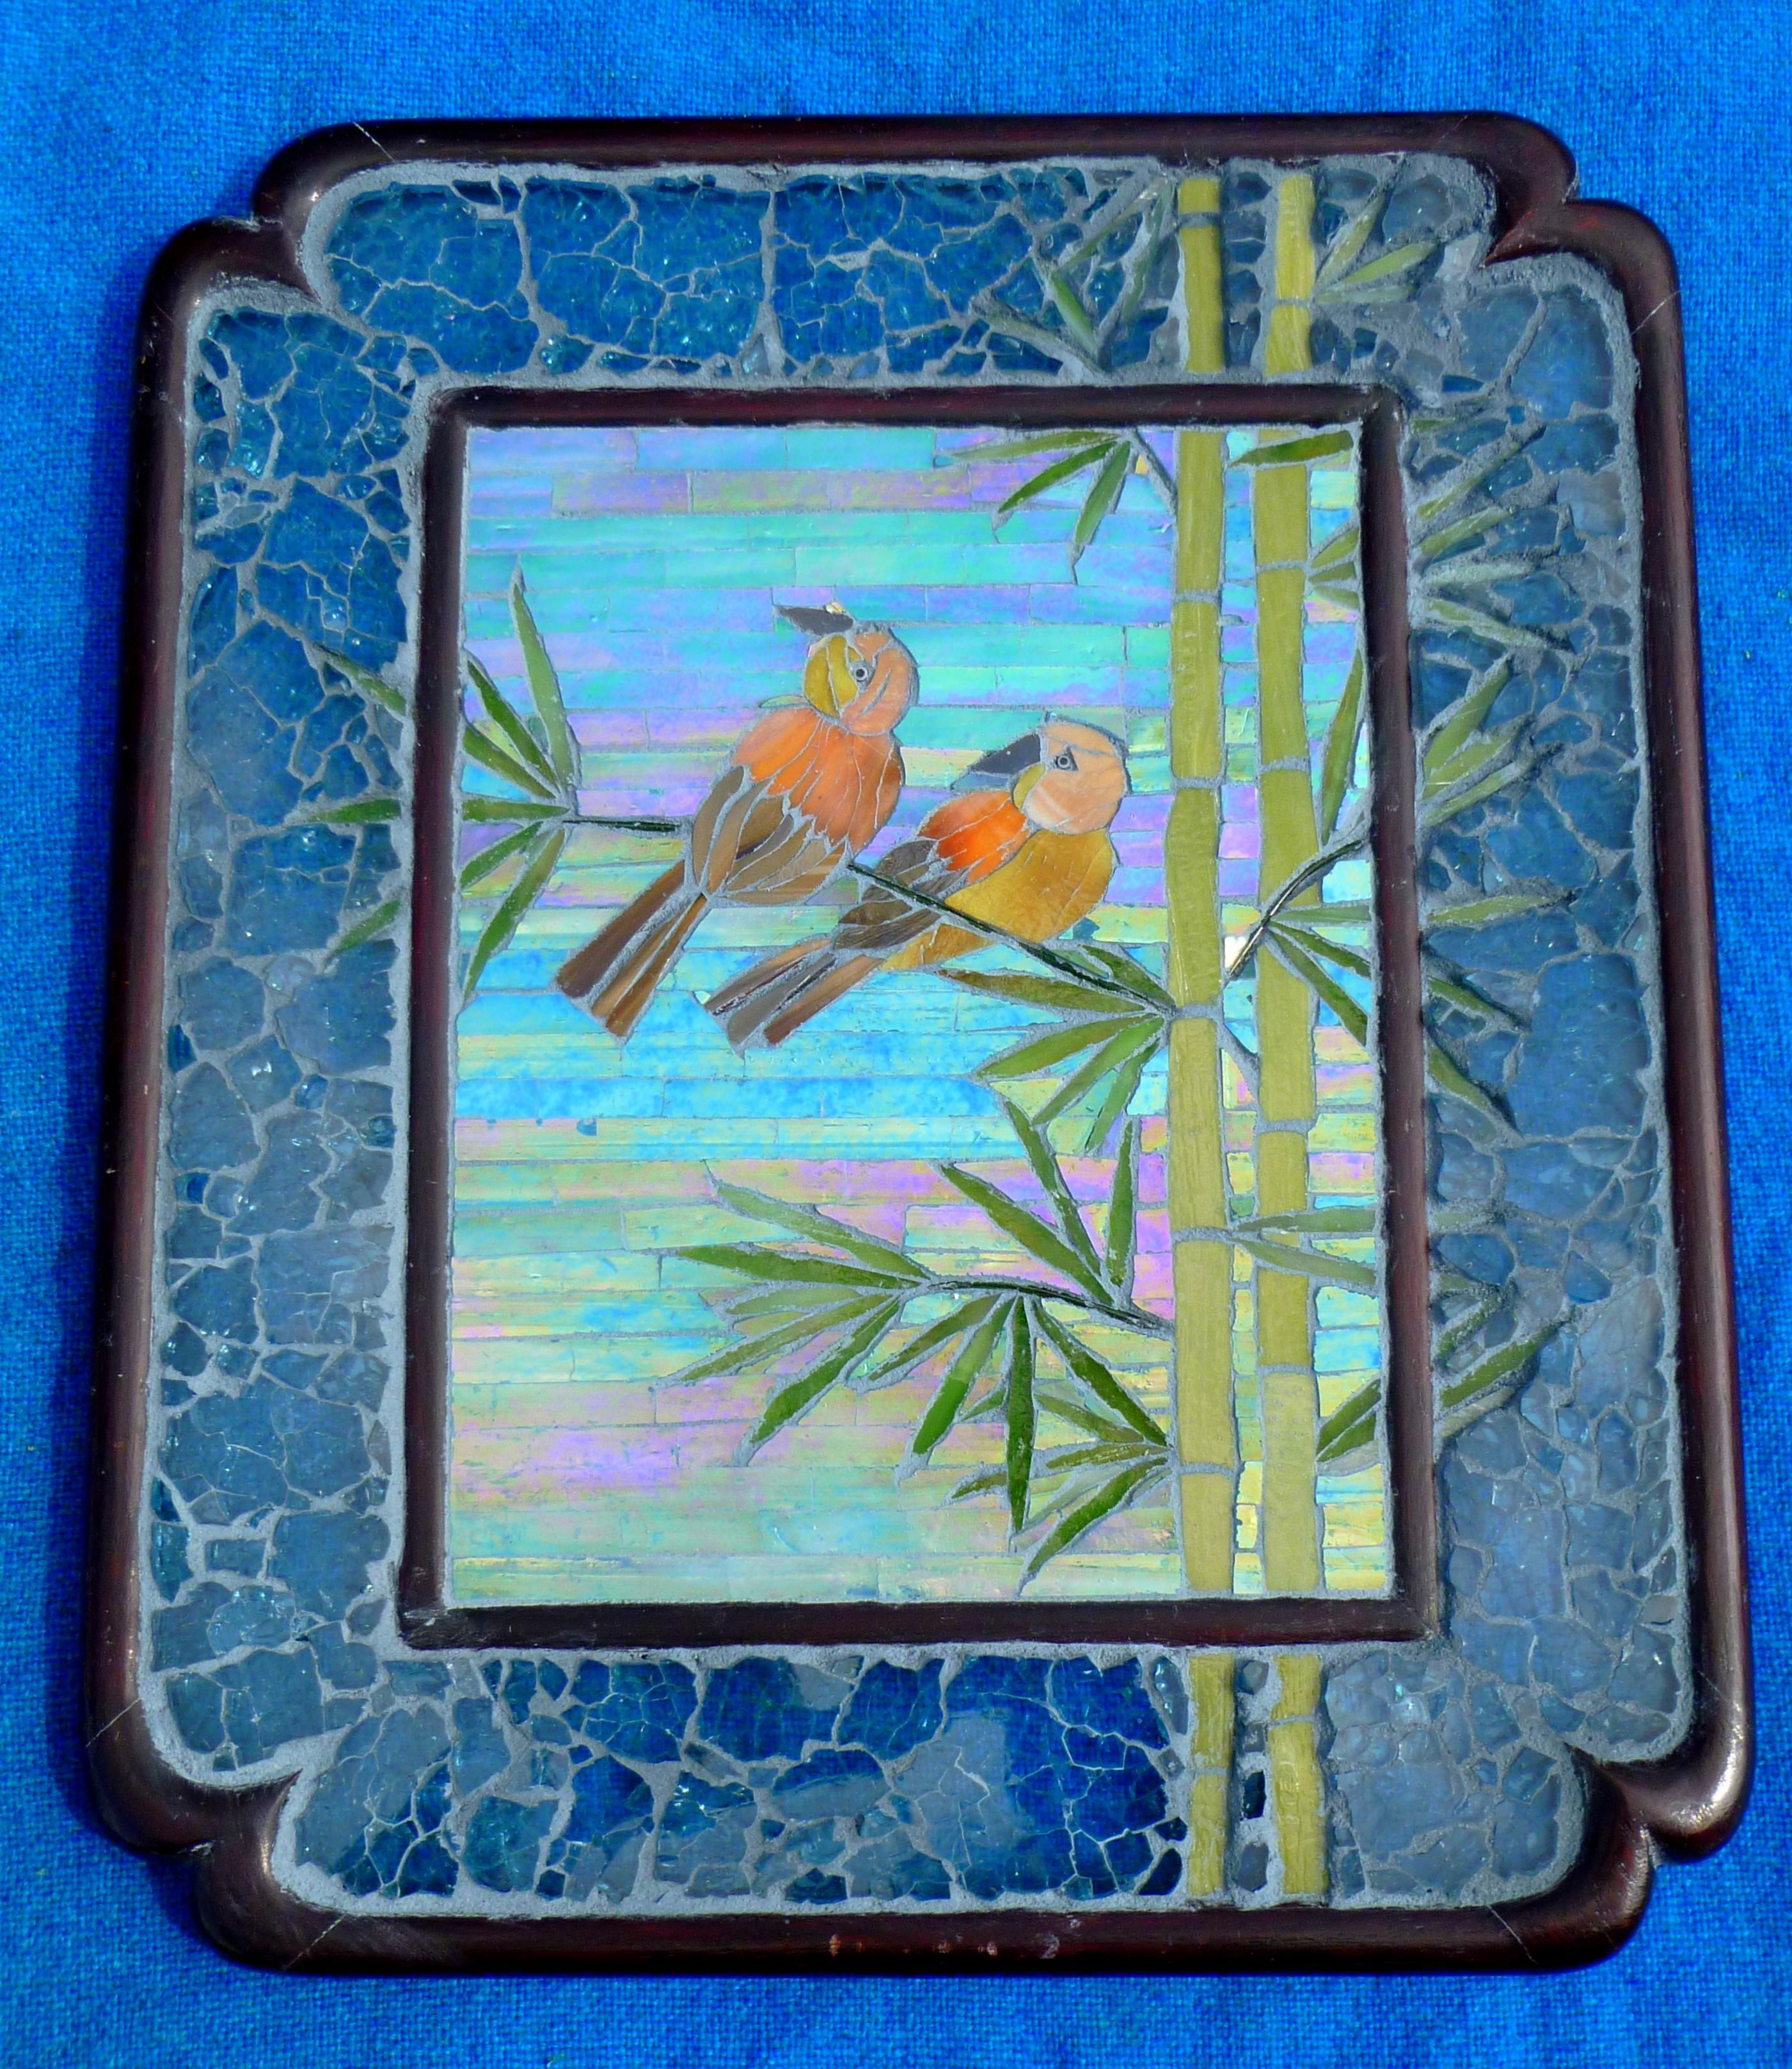 Bamboo Lovers - Delphi Artist Floyfreestyle Mosaic Large And Small